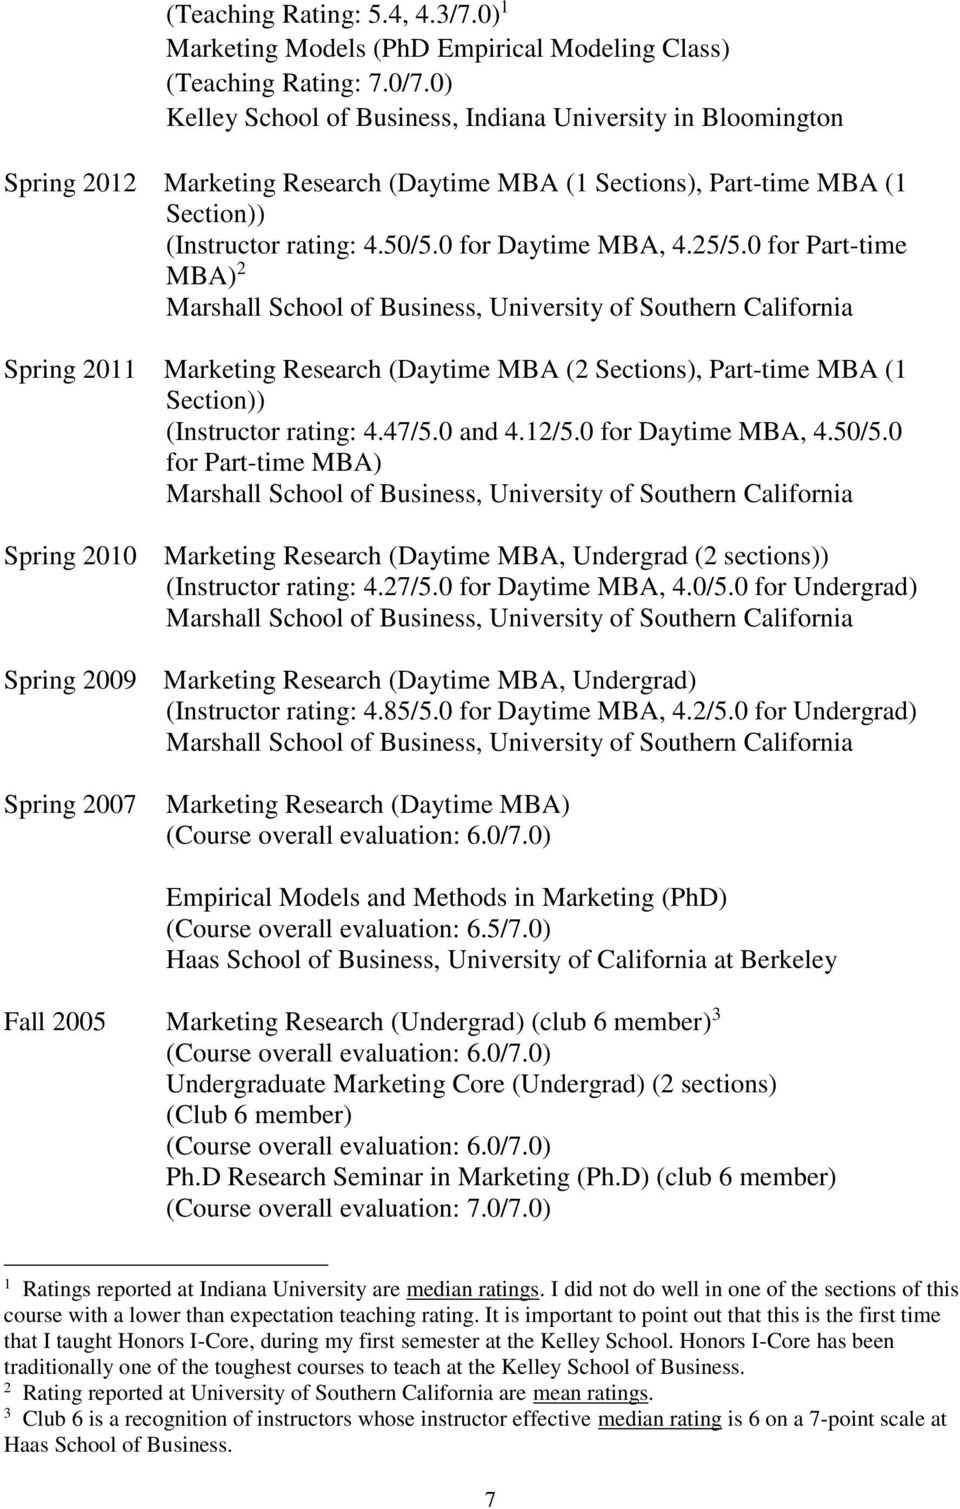 25/5.0 for Part-time MBA) 2 Marshall School of Business, University of Southern California Spring 2011 Marketing Research (Daytime MBA (2 Sections), Part-time MBA (1 Section)) (Instructor rating: 4.